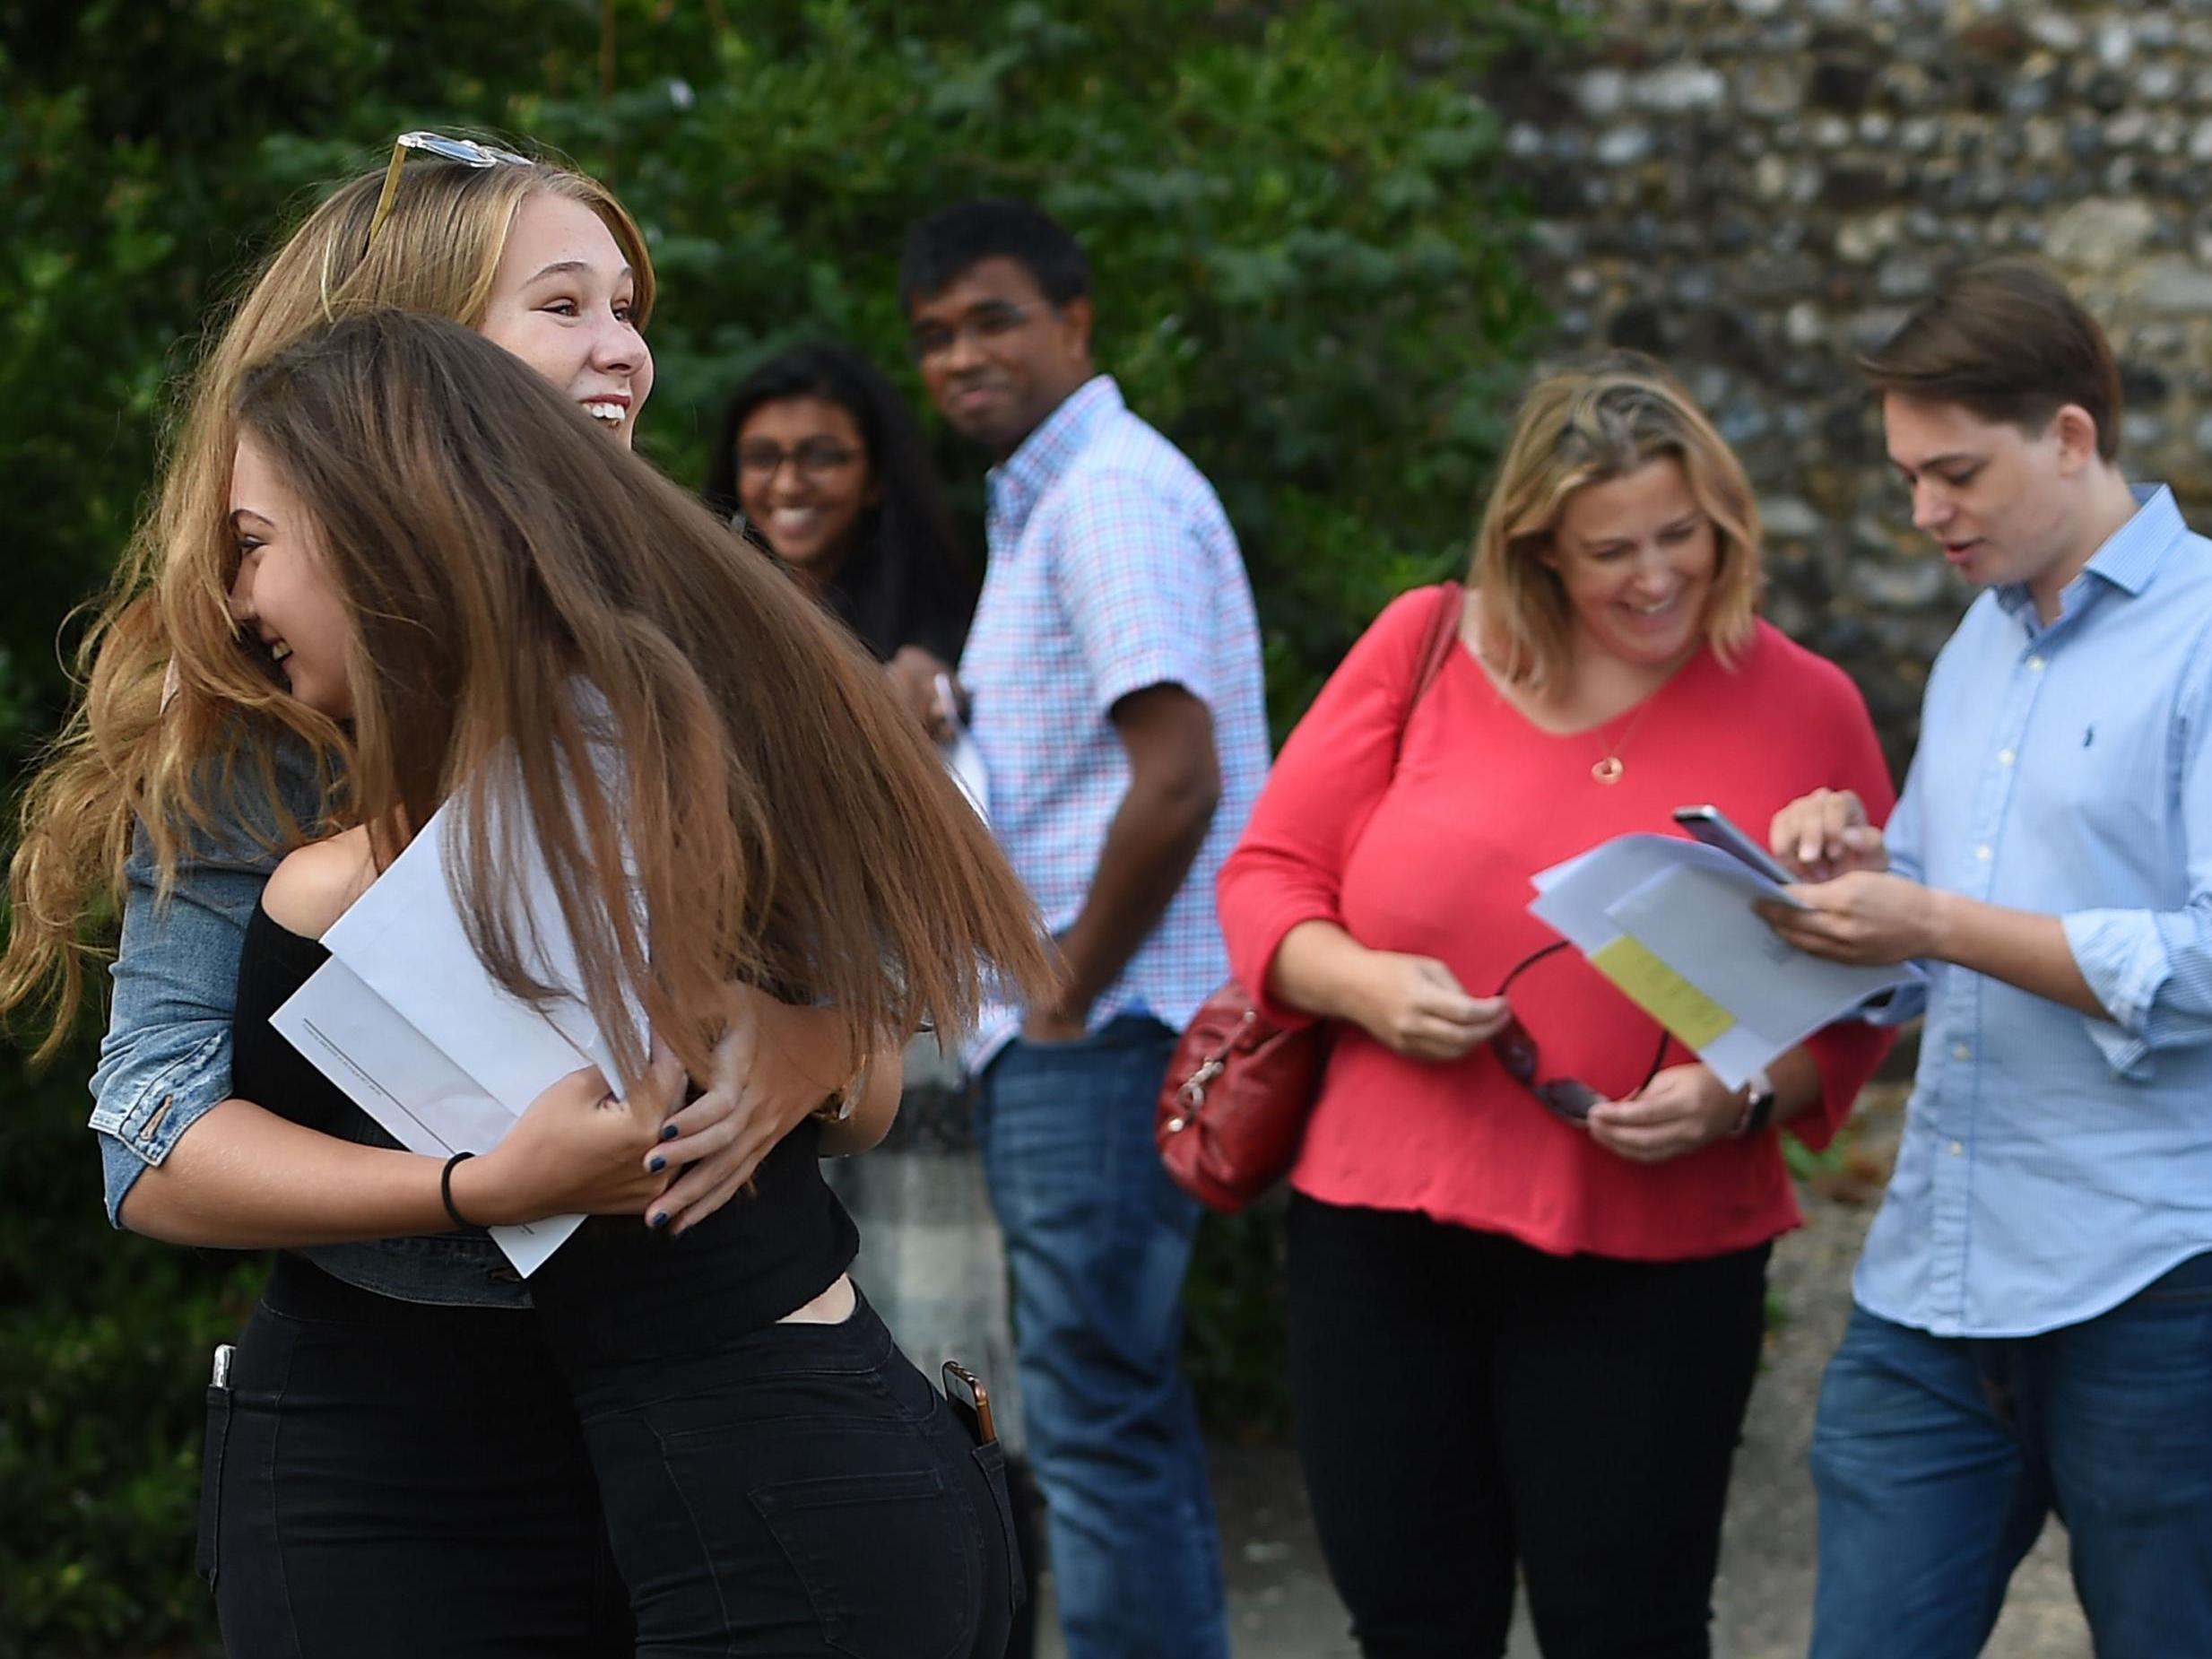 GCSE results day - latest news, breaking stories and comment - The